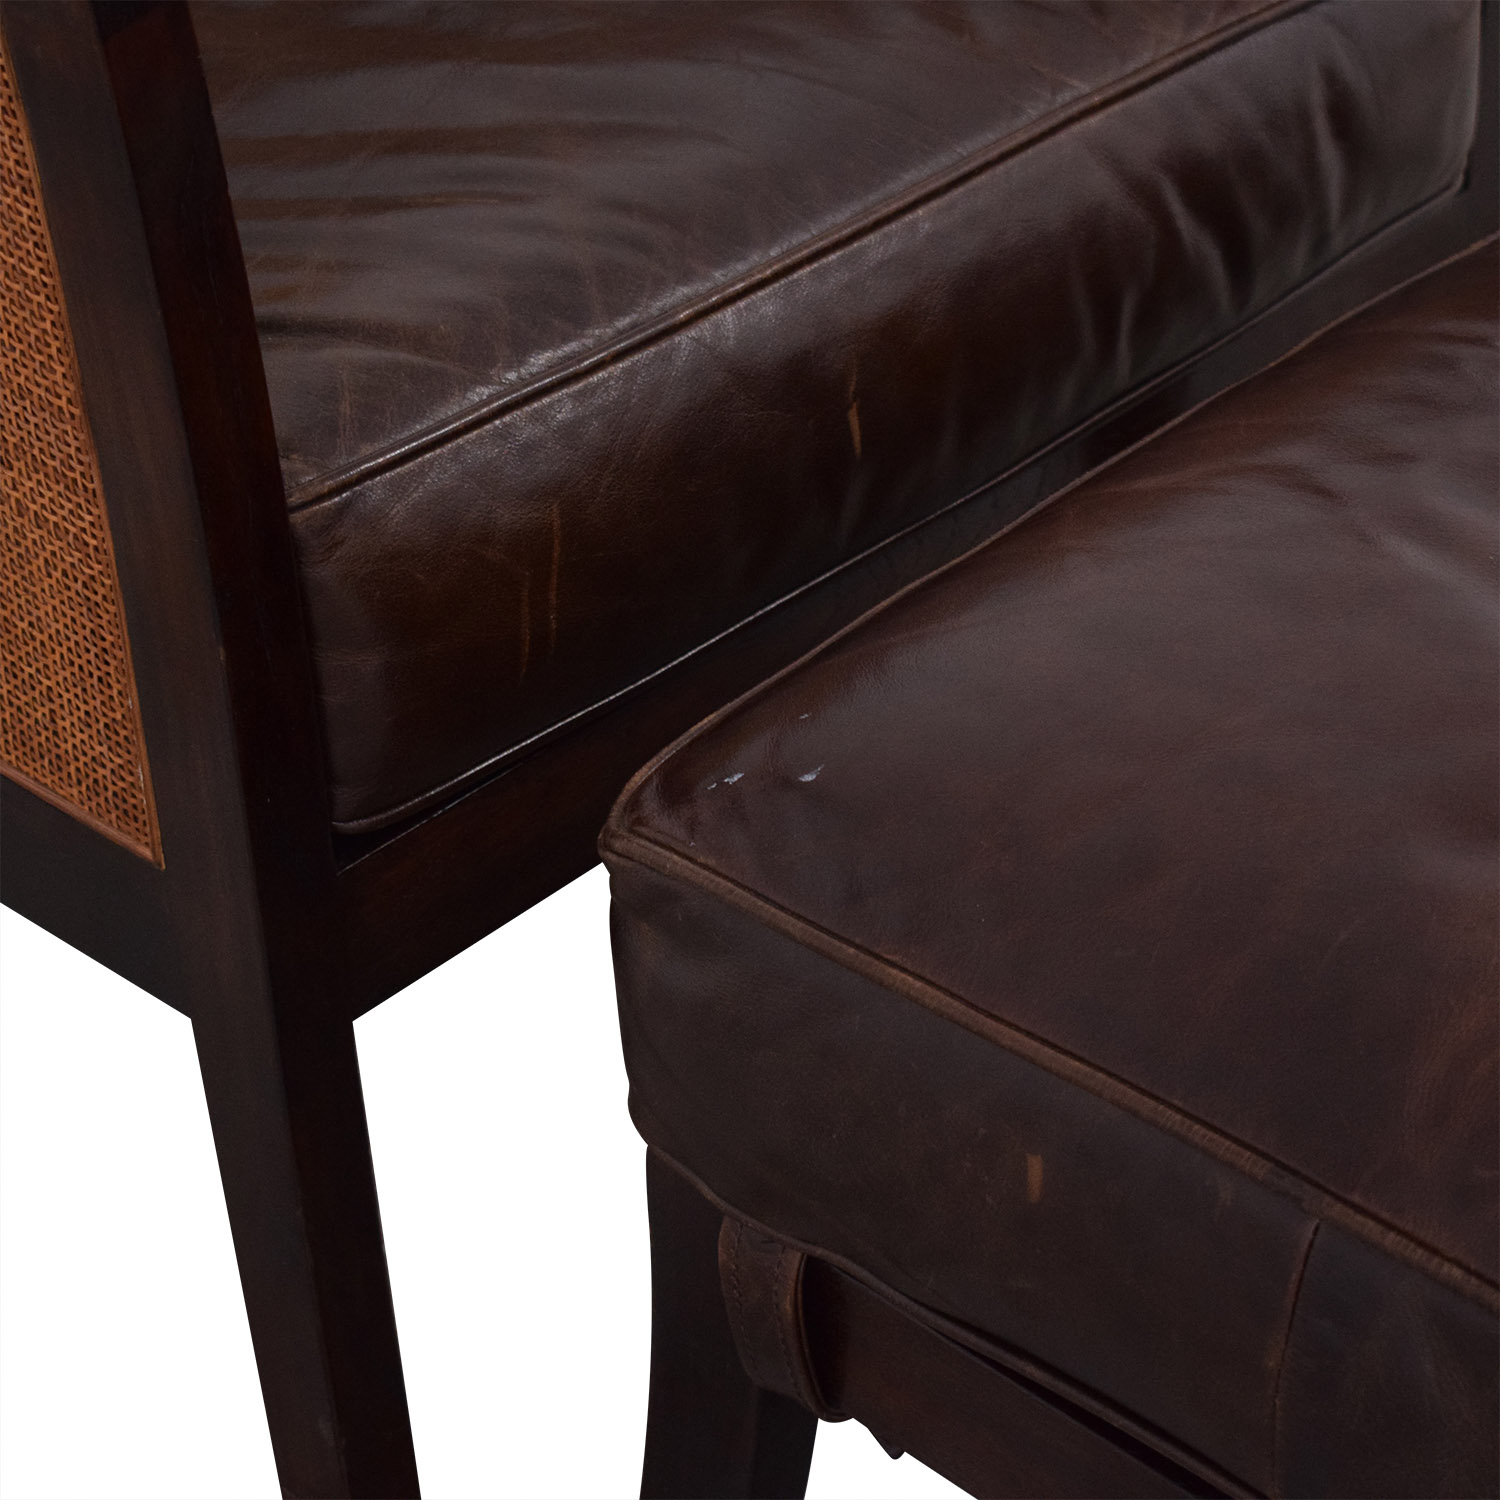 buy Crate & Barrel Blake Lounge Chair & Ottoman Crate & Barrel Accent Chairs